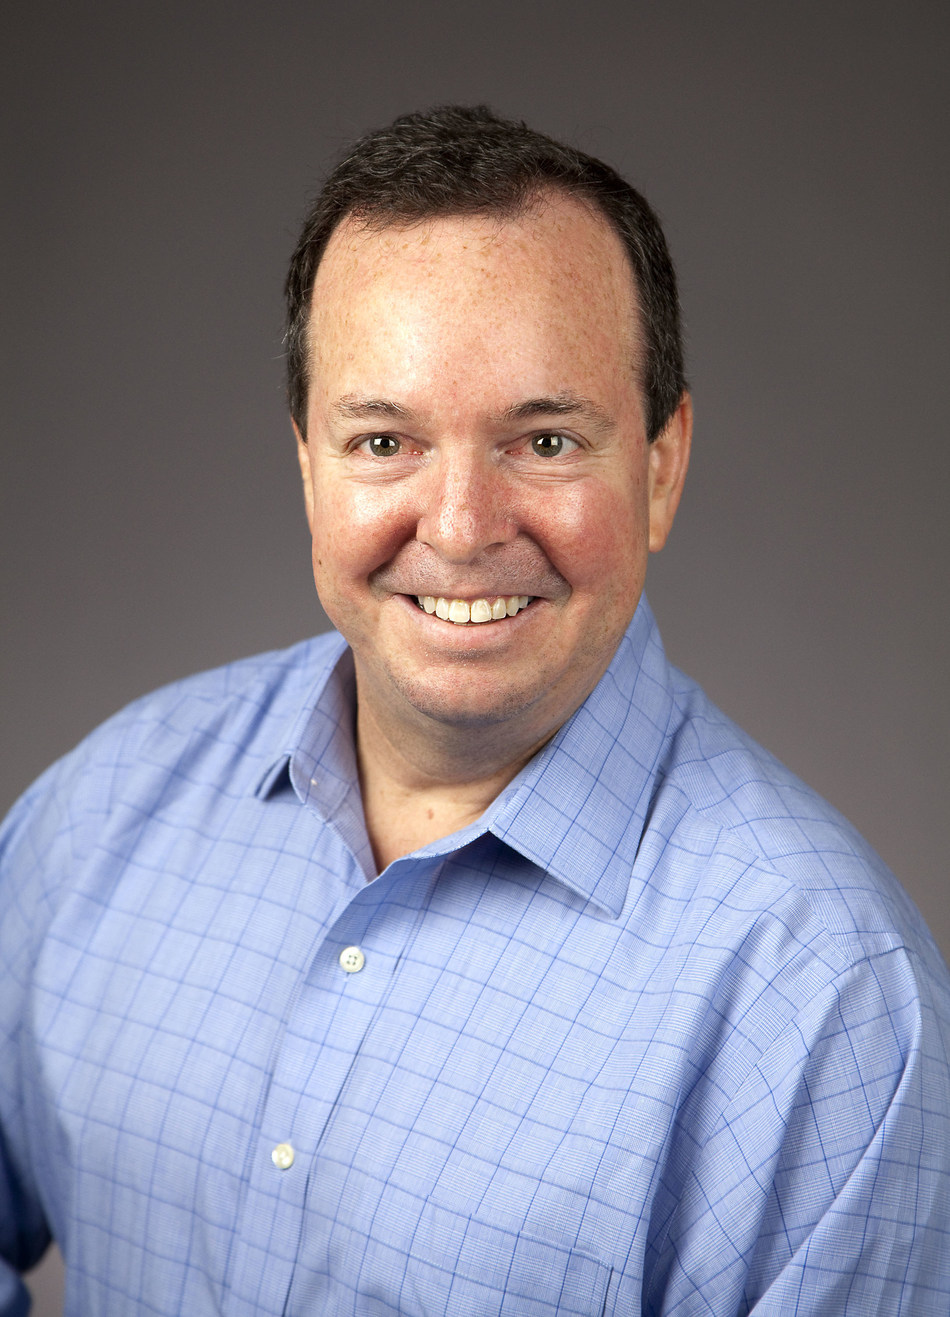 Pete Harper will take over the reigns as Chief Financial Officer for DEI Holdings, Inc. and Sound United